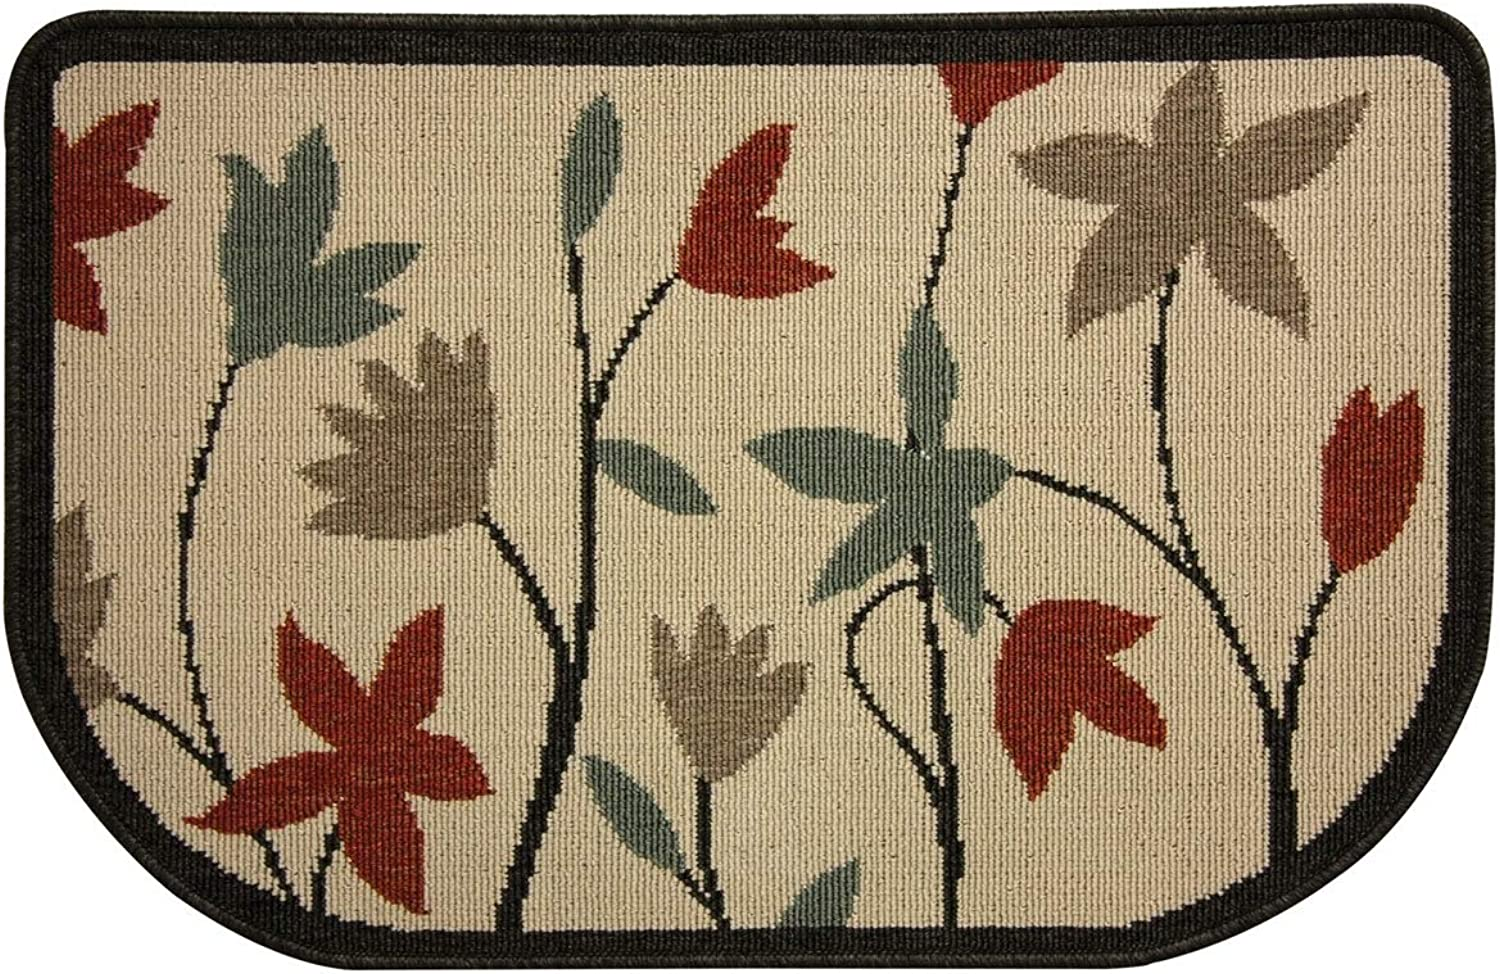 Pilgrim Home and Hearth 19622-1 Pilgrim Fireplace Hearth Rug, Beautiful